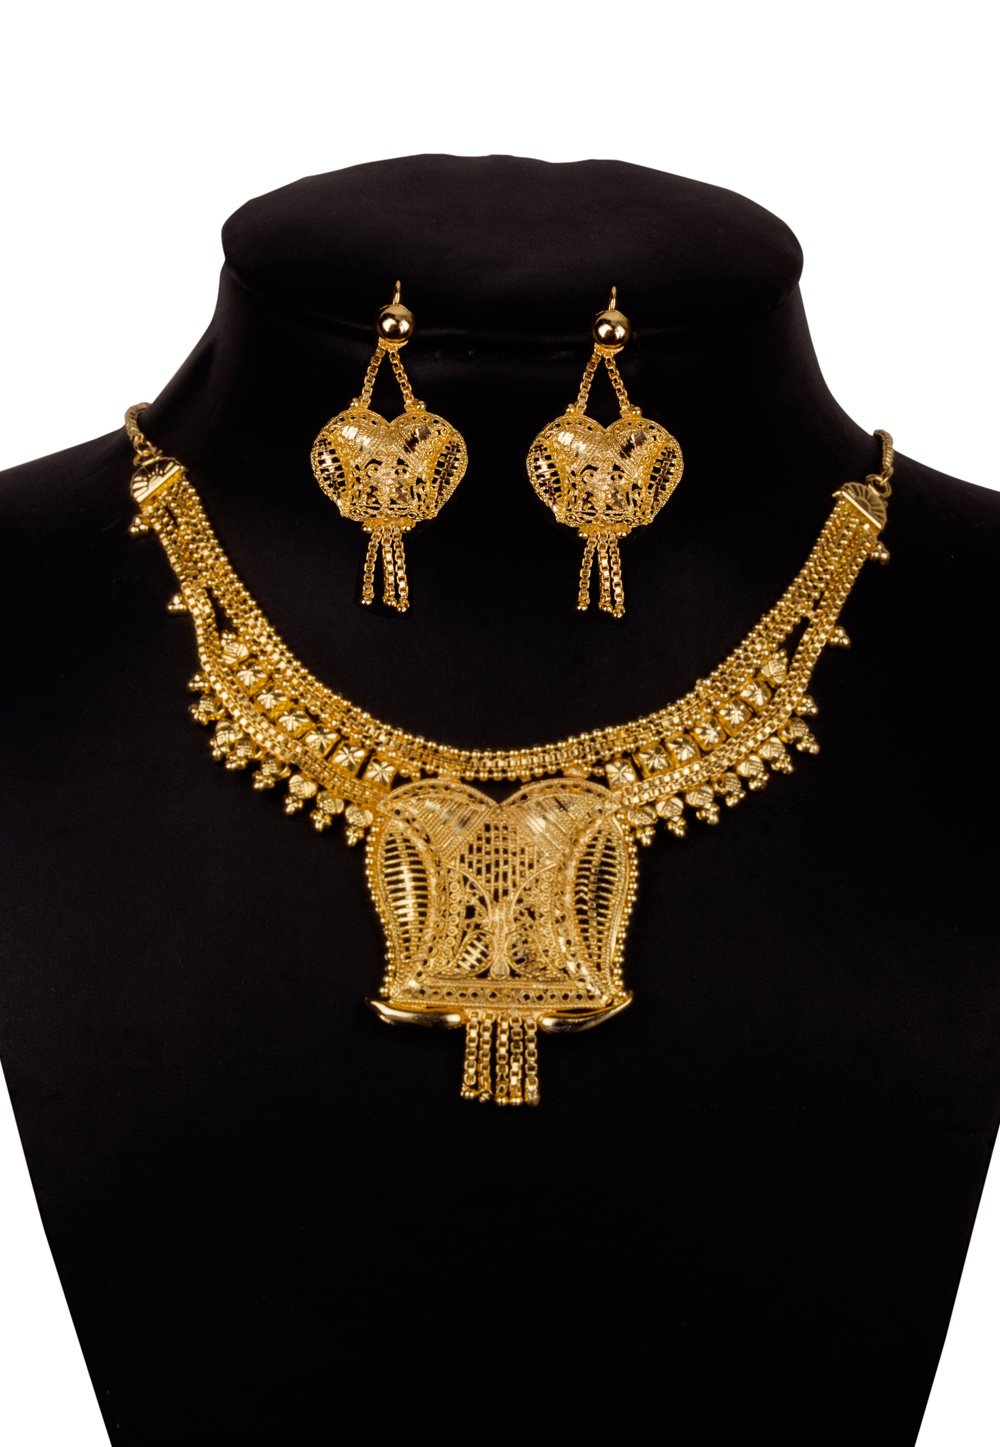 Golden Alloy Kundan Necklace With Earrings 156252